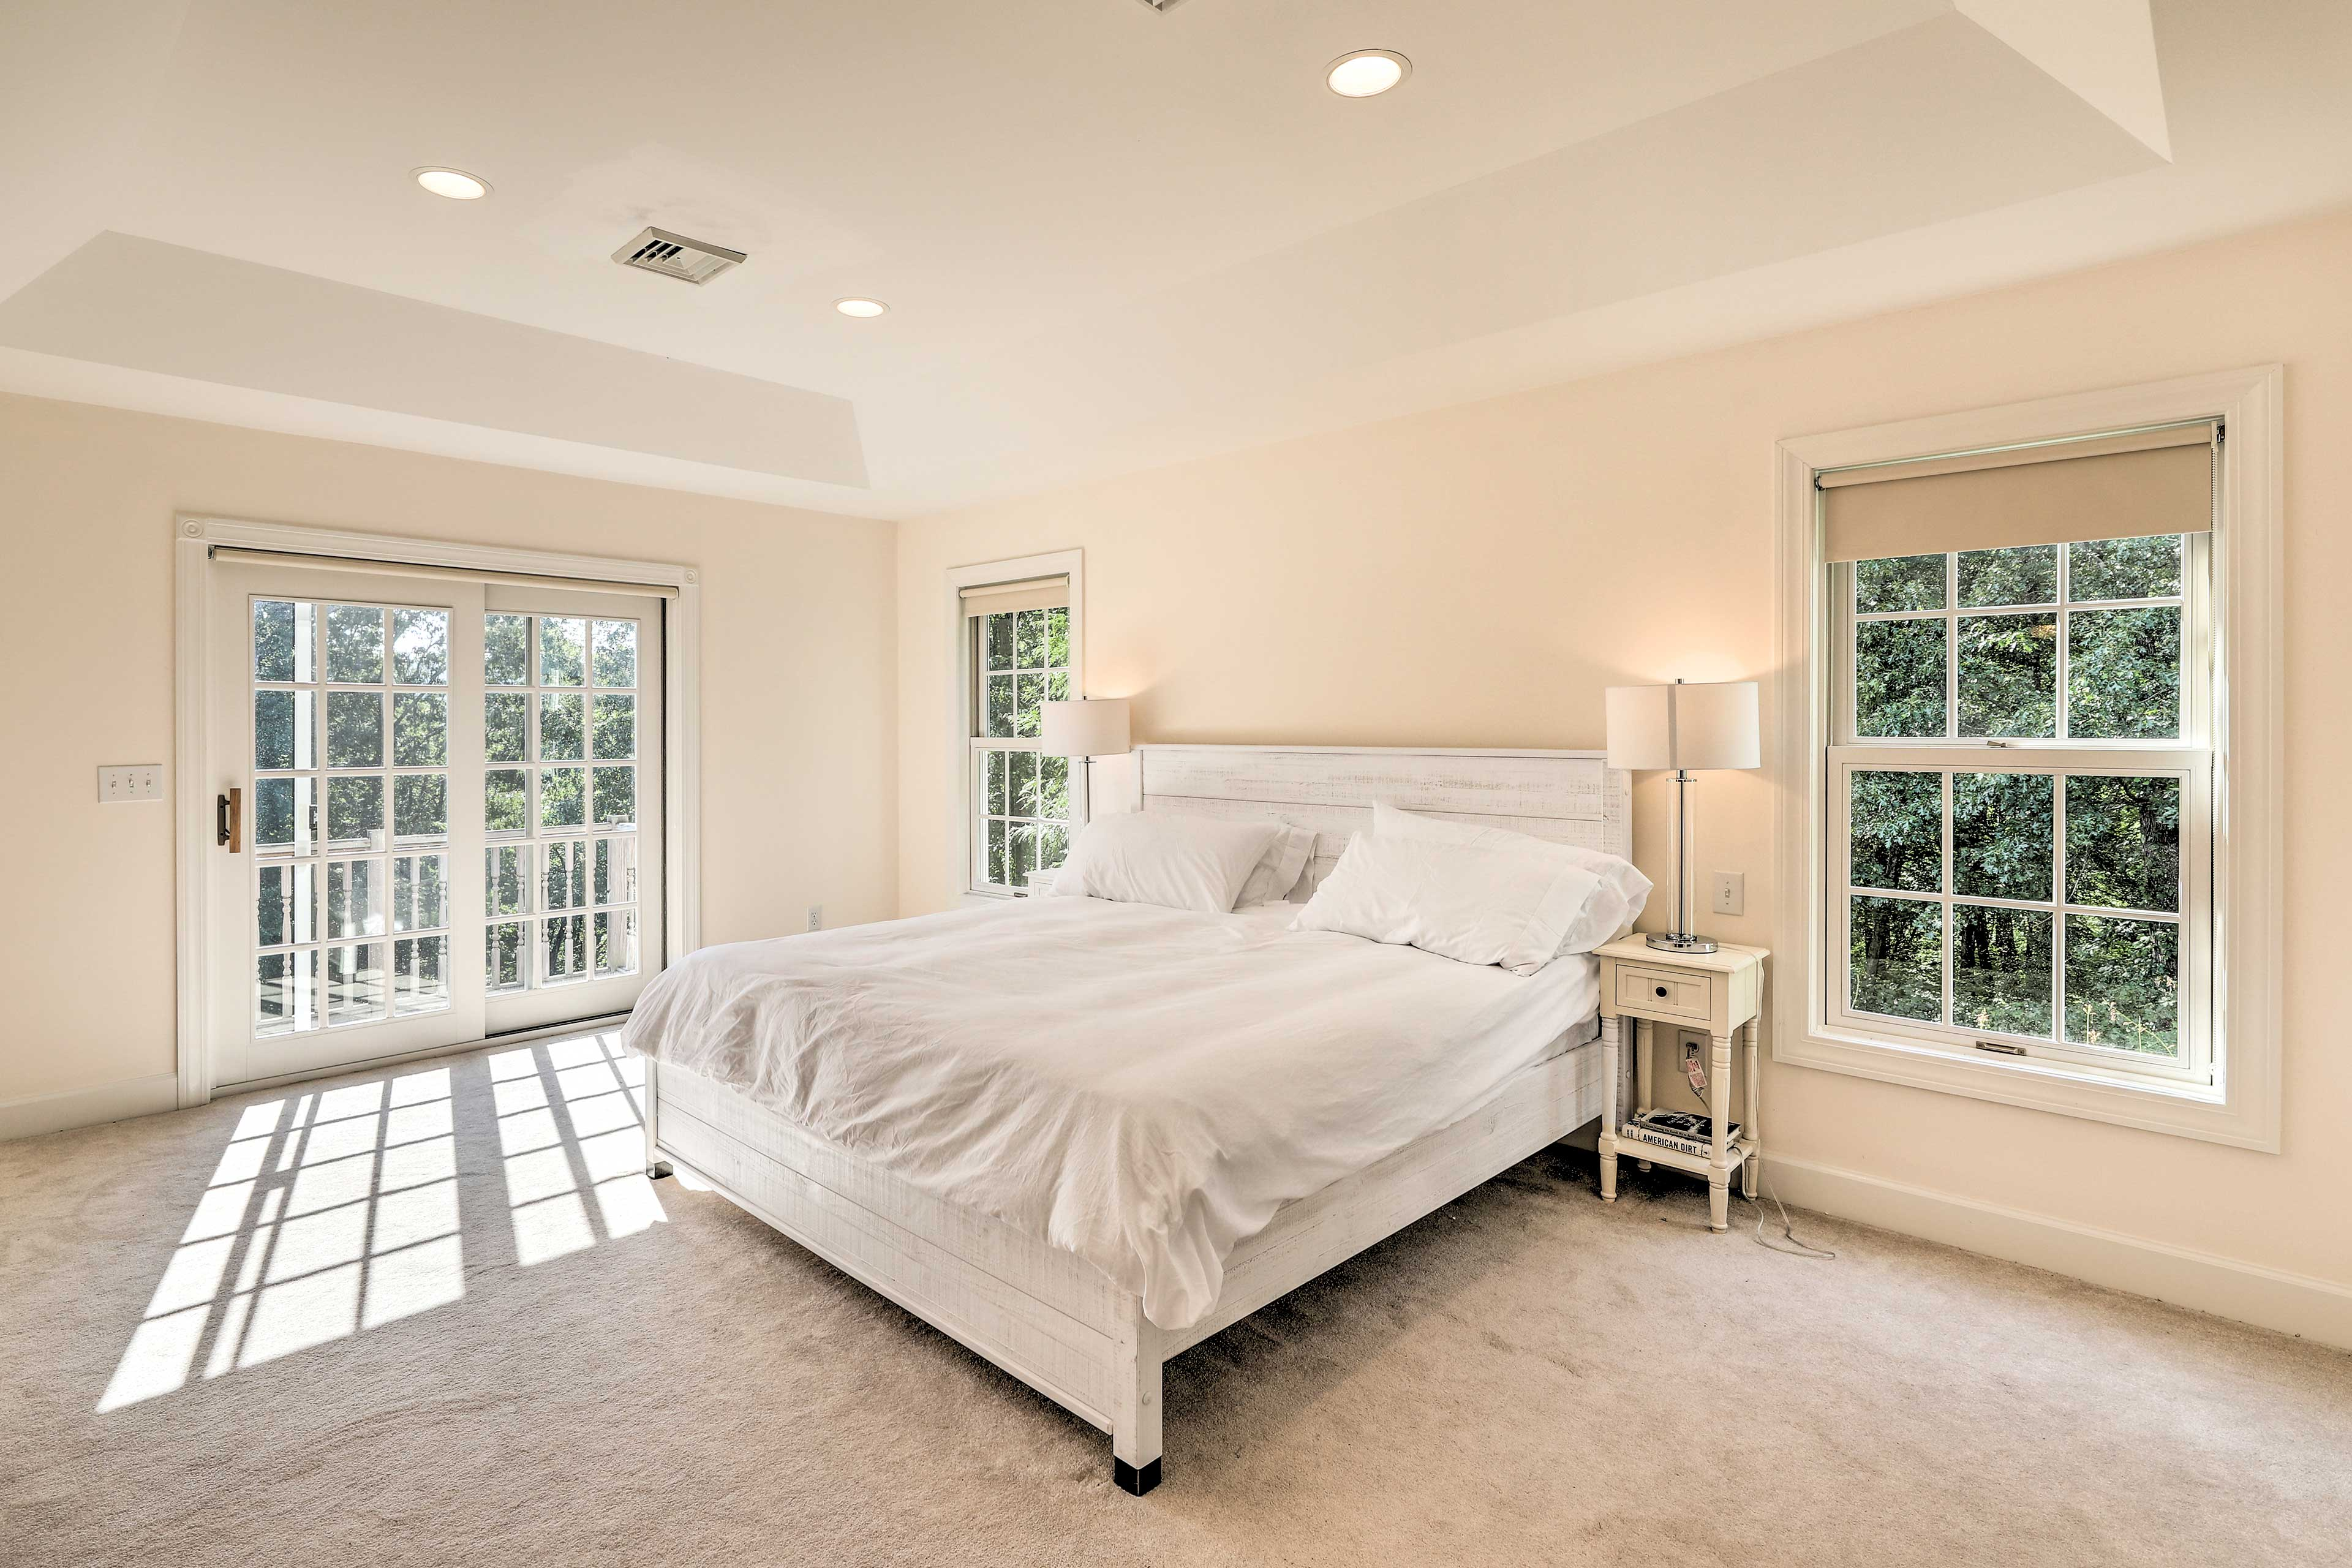 Wake up each morning to enjoy your wooded surroundings & private balcony.